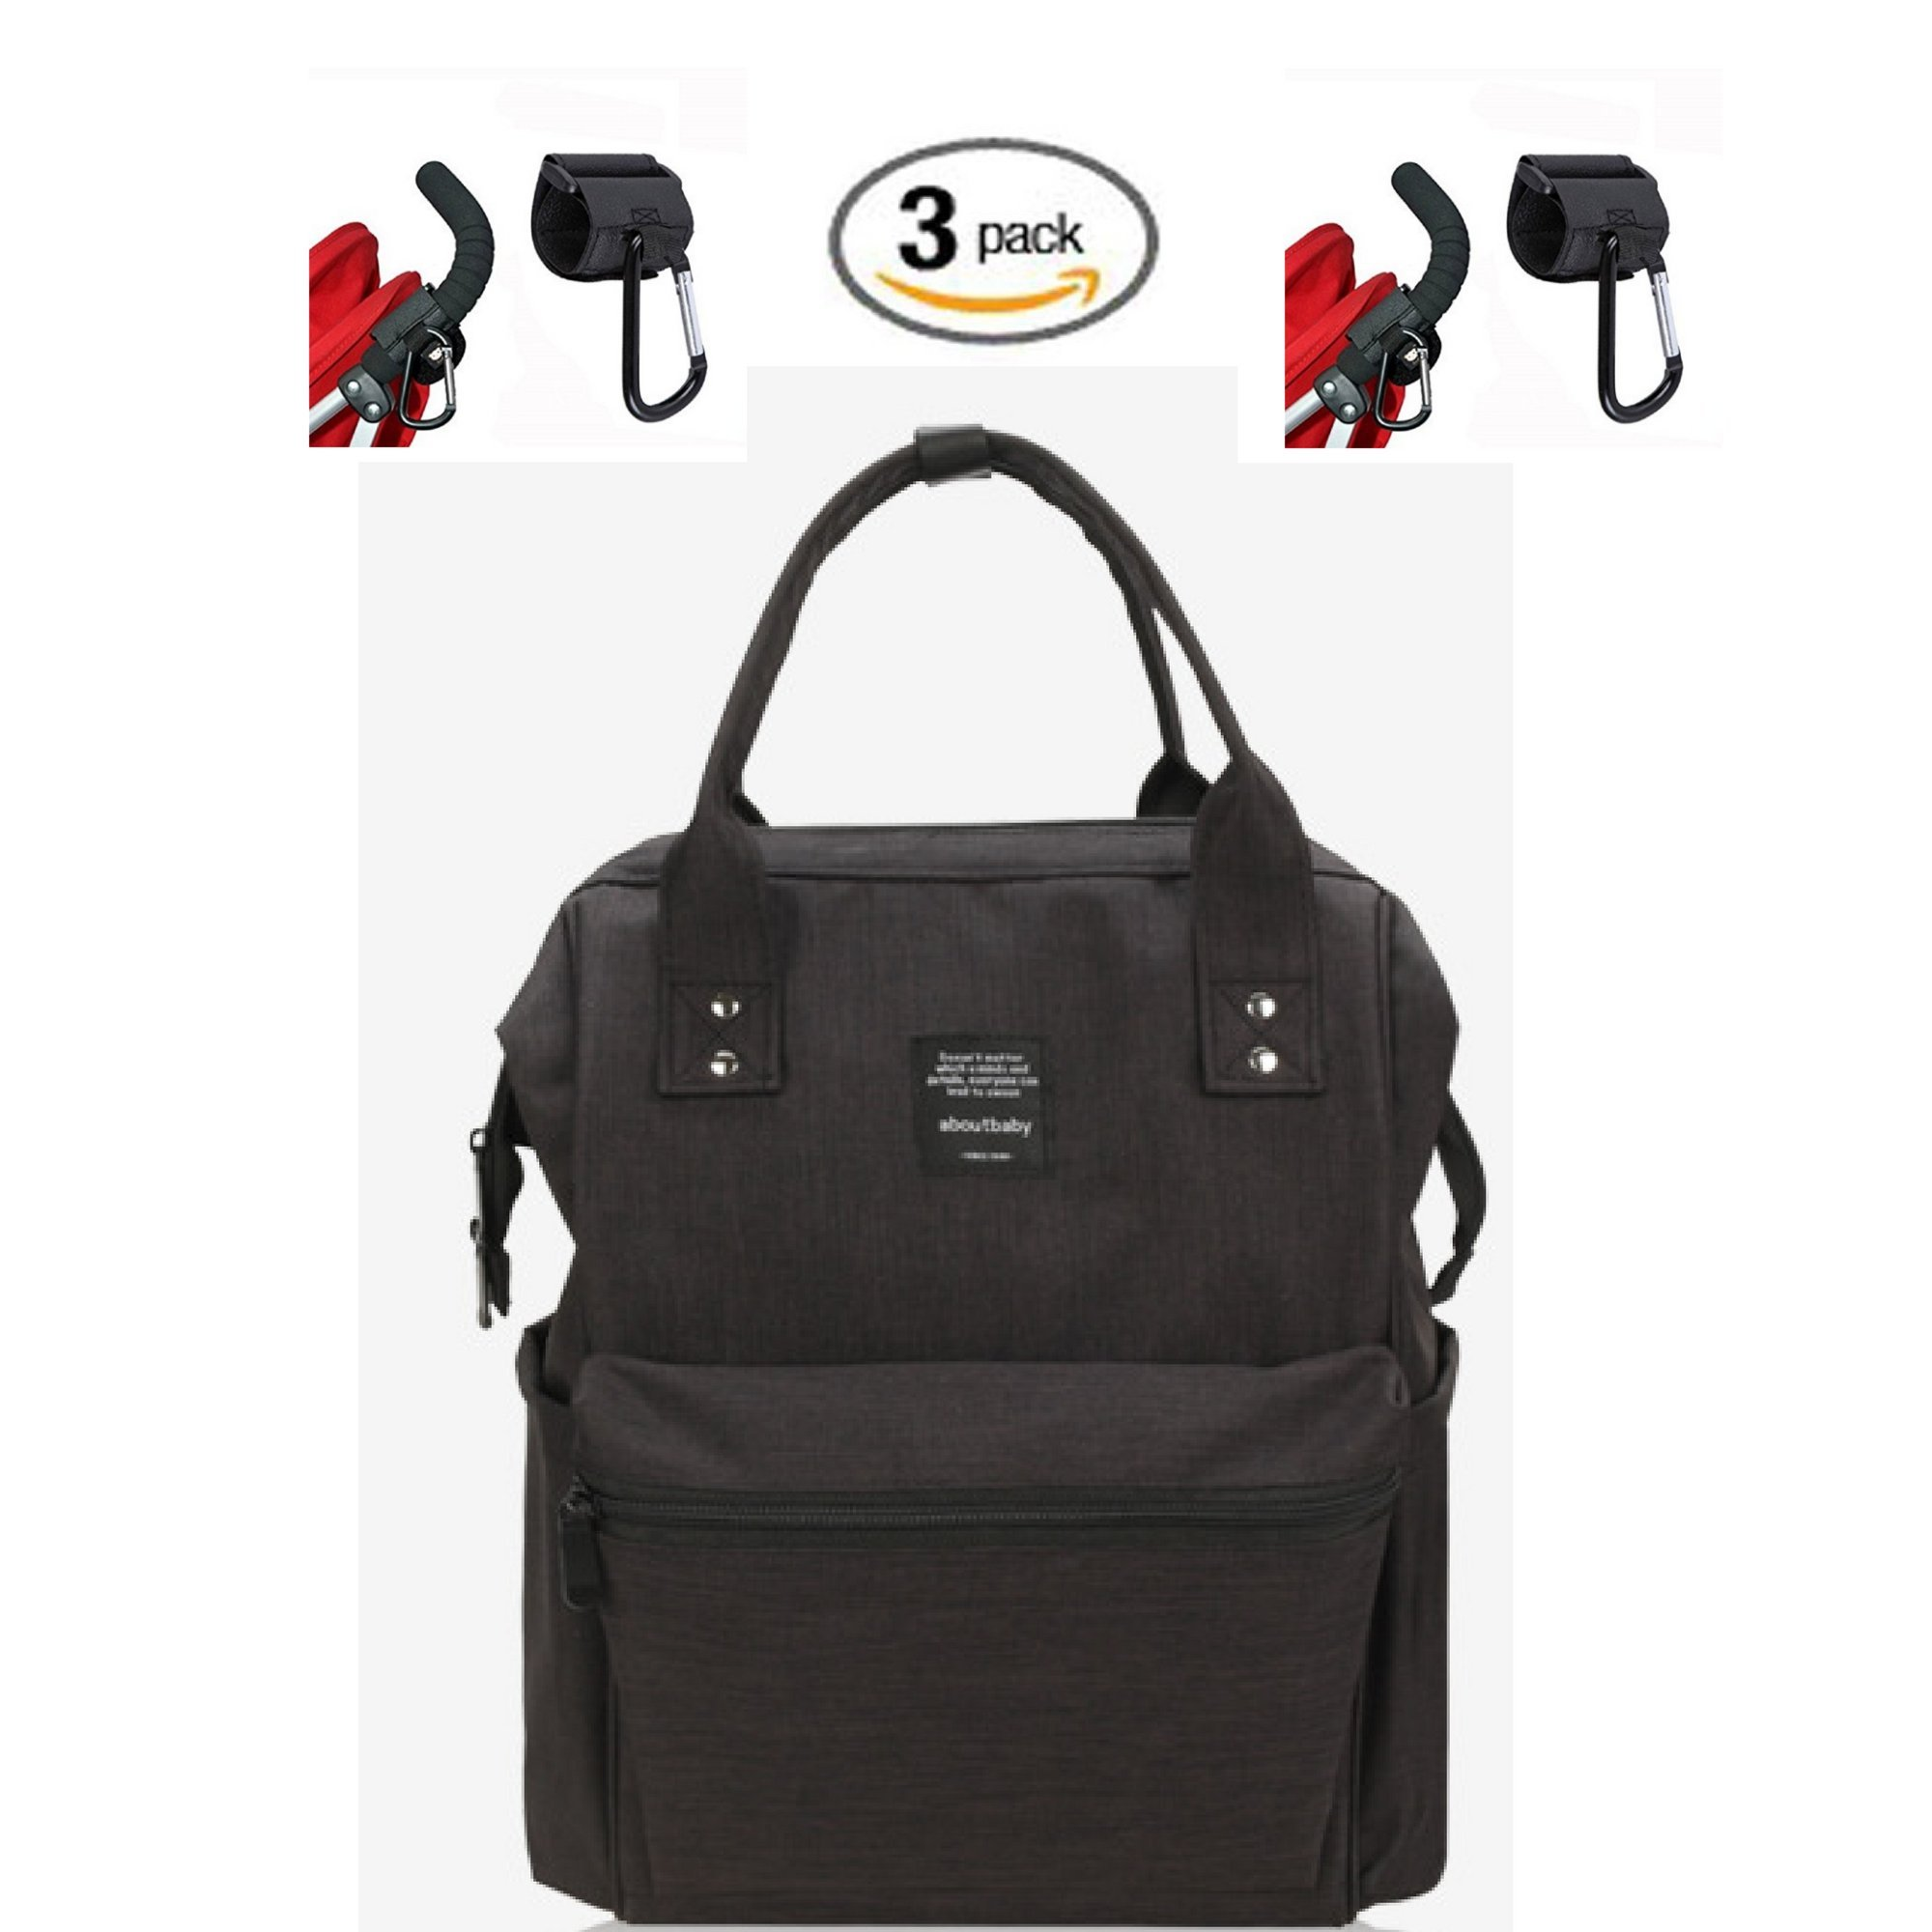 Waterproof Backpack with 2 Stroller Hooks - Durable, Stylish, Large Capacity - Diaper Bag, Maternity Travel Backpack, Multi-Function for Baby Care, Nappy Bag - Insulated Bottle Bag, 3 (Black)